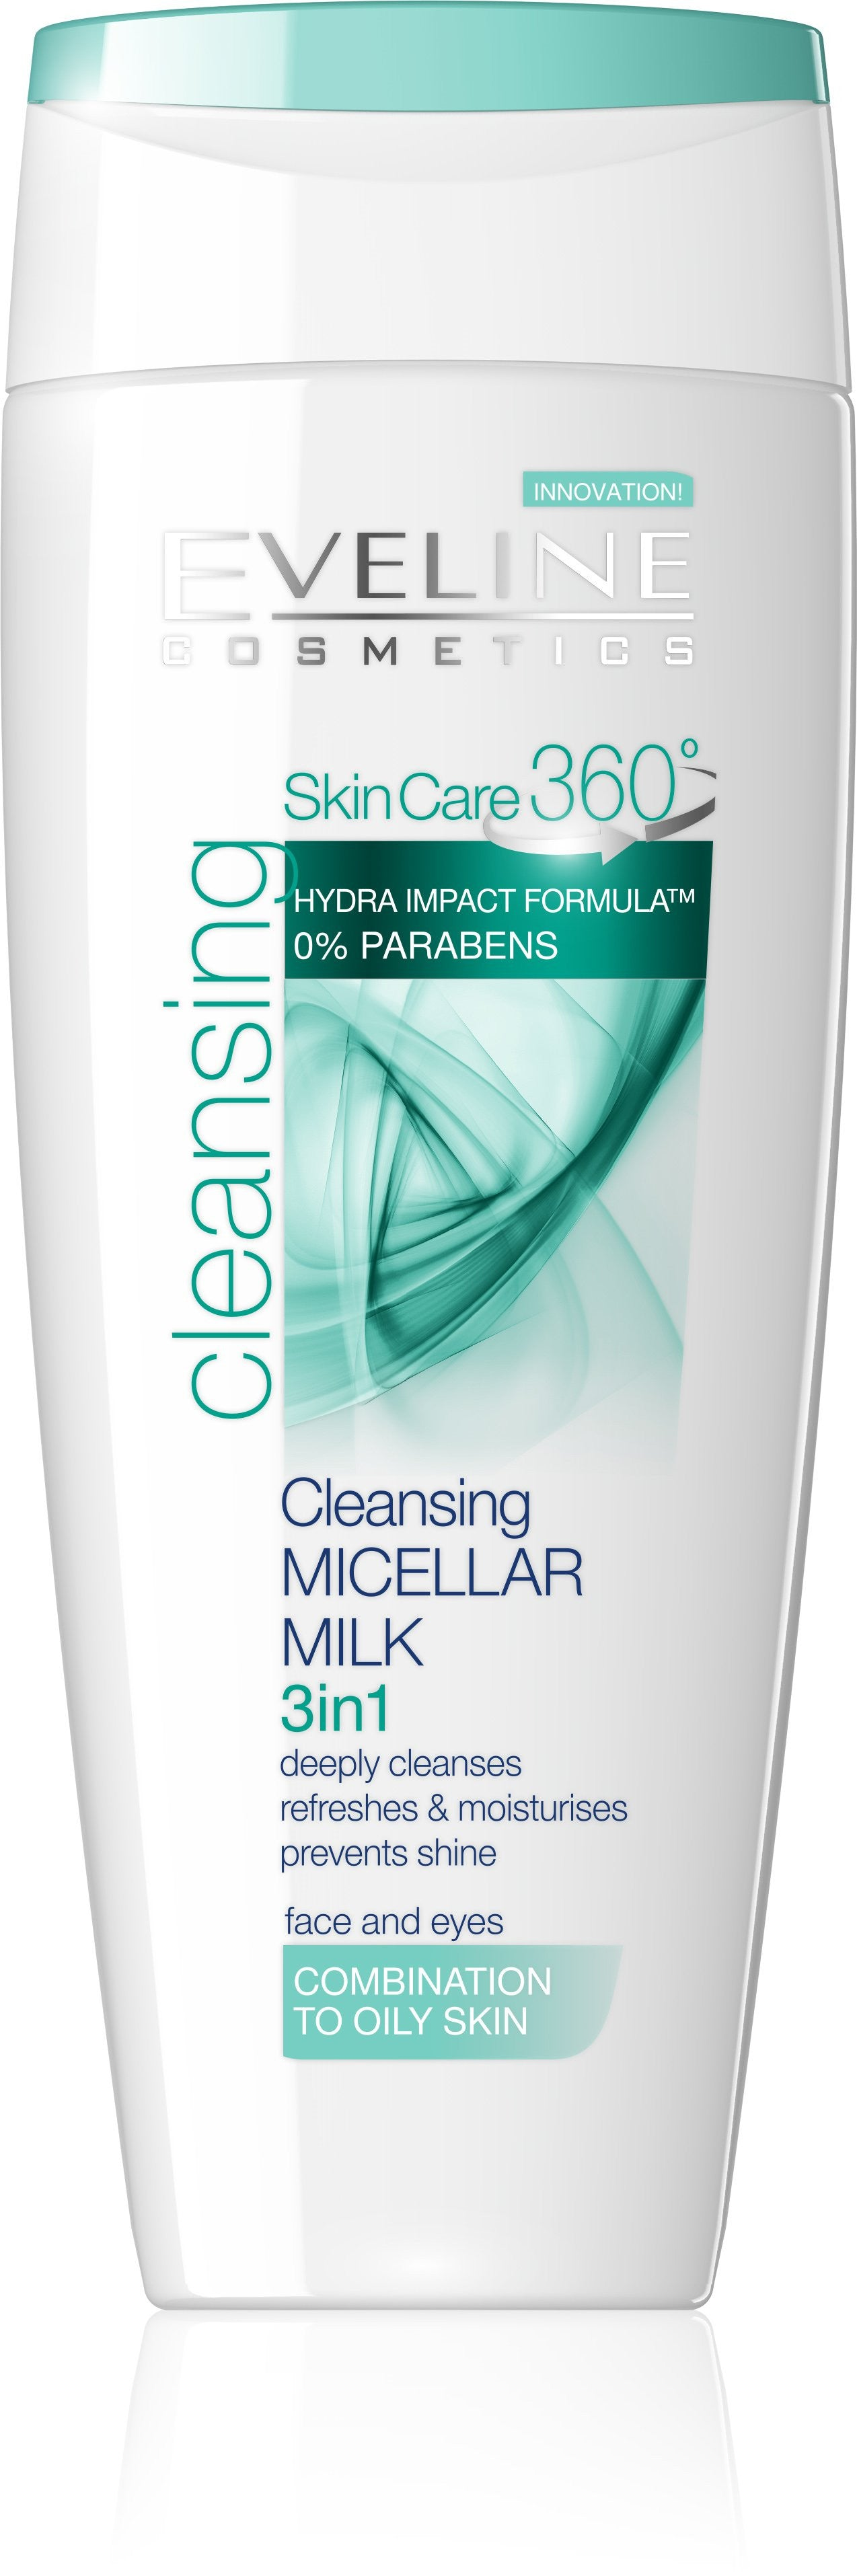 SkinCare 360 Cleansing Micellar Milk 3 in 1 Combination to Oily Skin eveline-cosmetics.myshopify.com